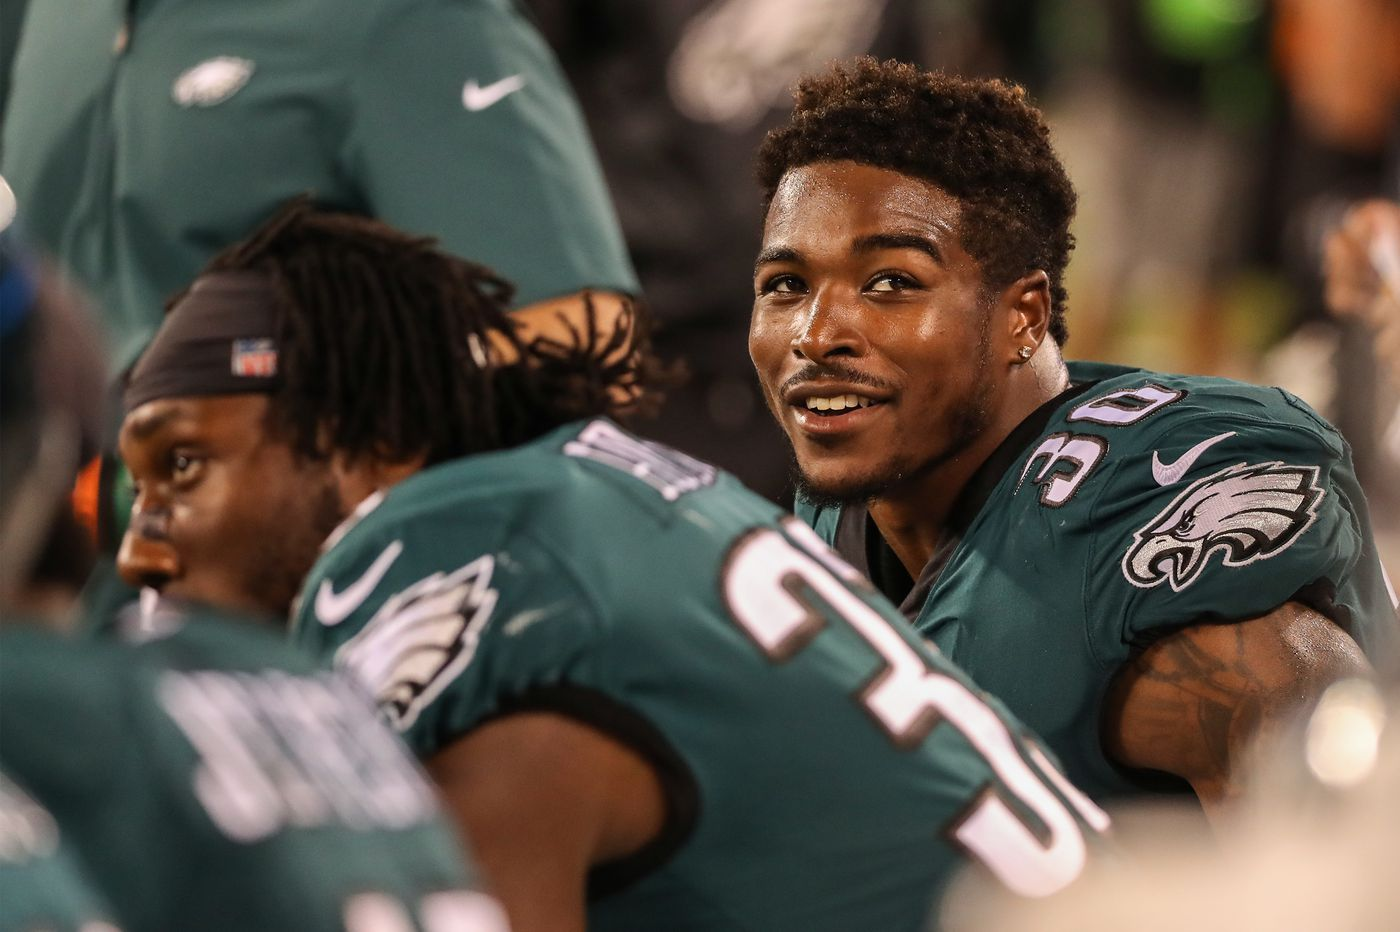 Eagles' playing time in win over Giants, safety situation, good day in NFC East   Early Birds